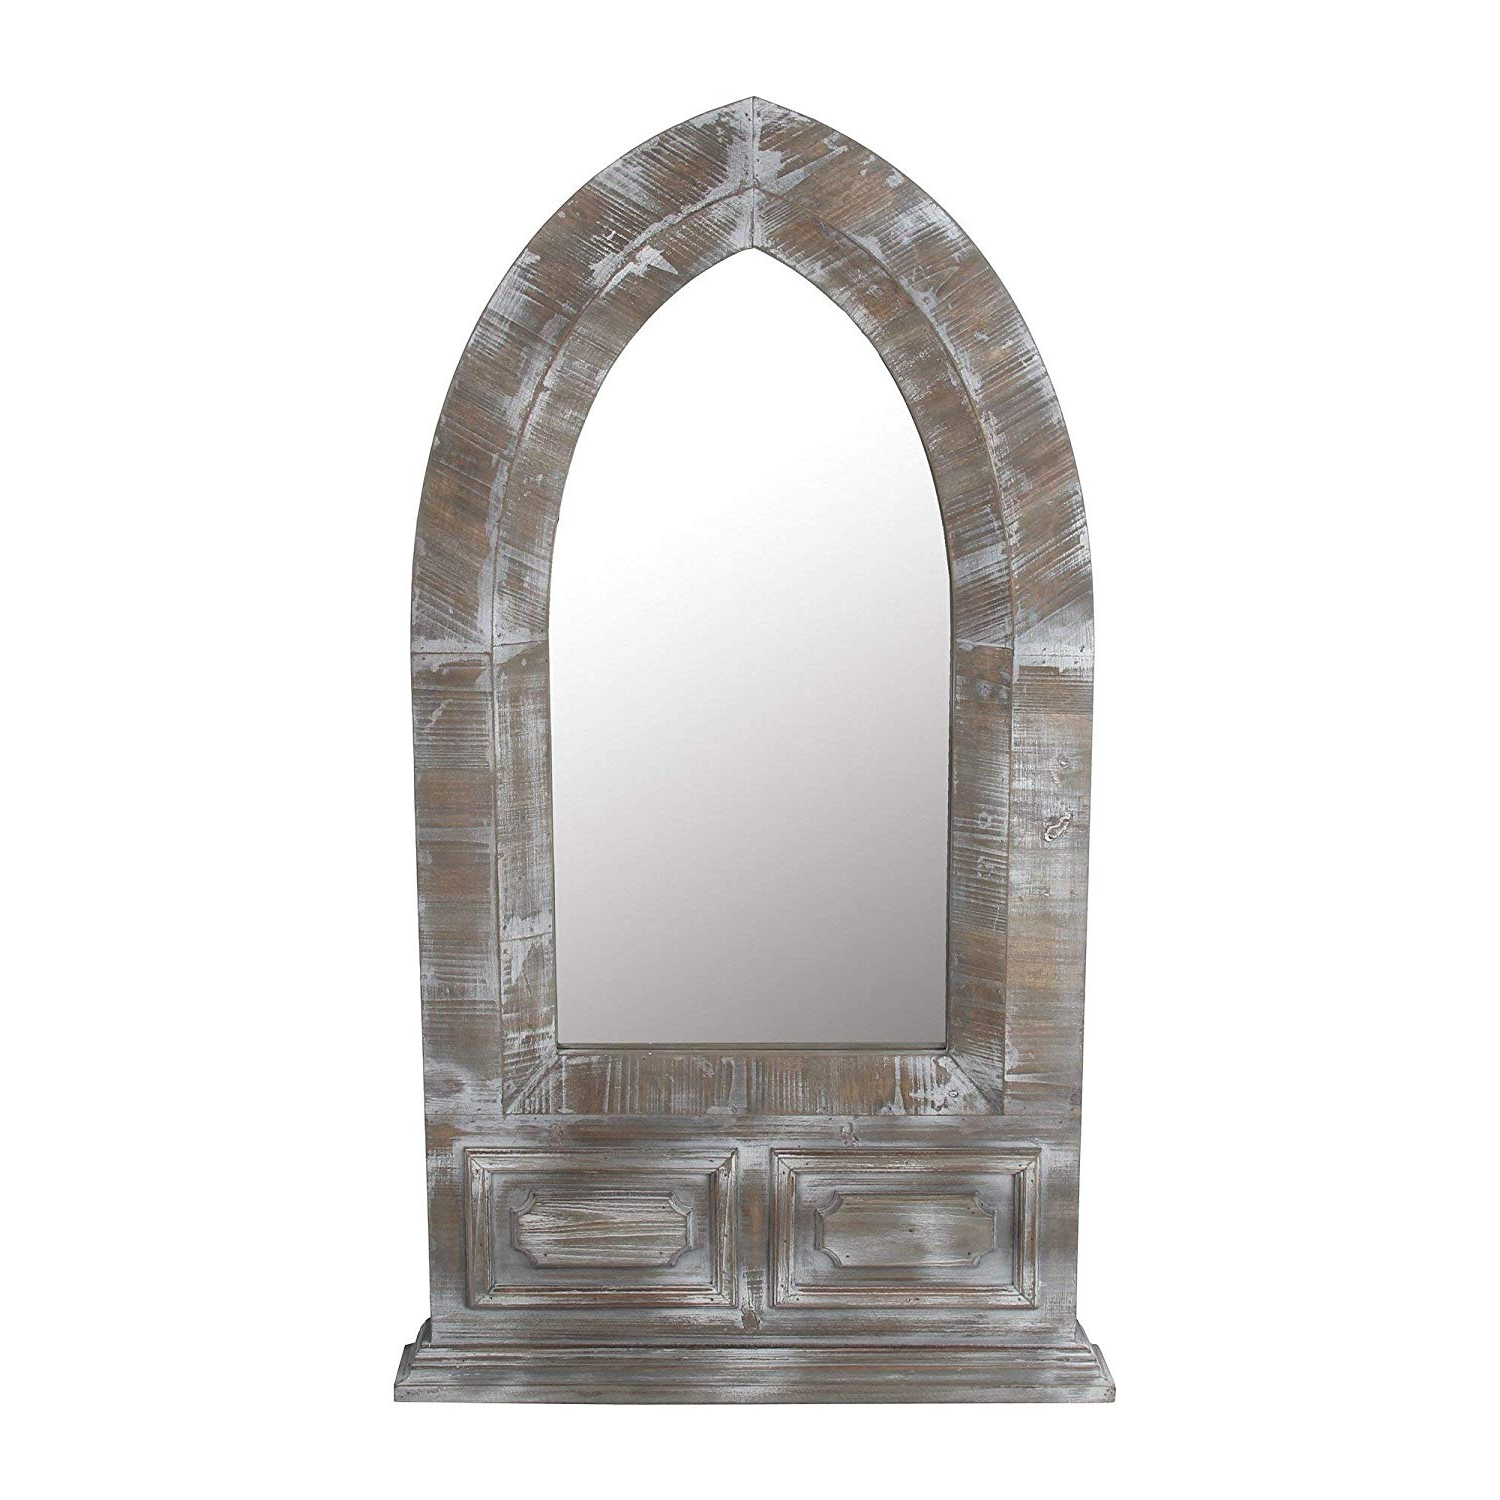 Distressed Wood Wall Mirrors Intended For Preferred Amazon: Privilege Distressed Wood Dome Wall Mirror: Home (View 11 of 20)